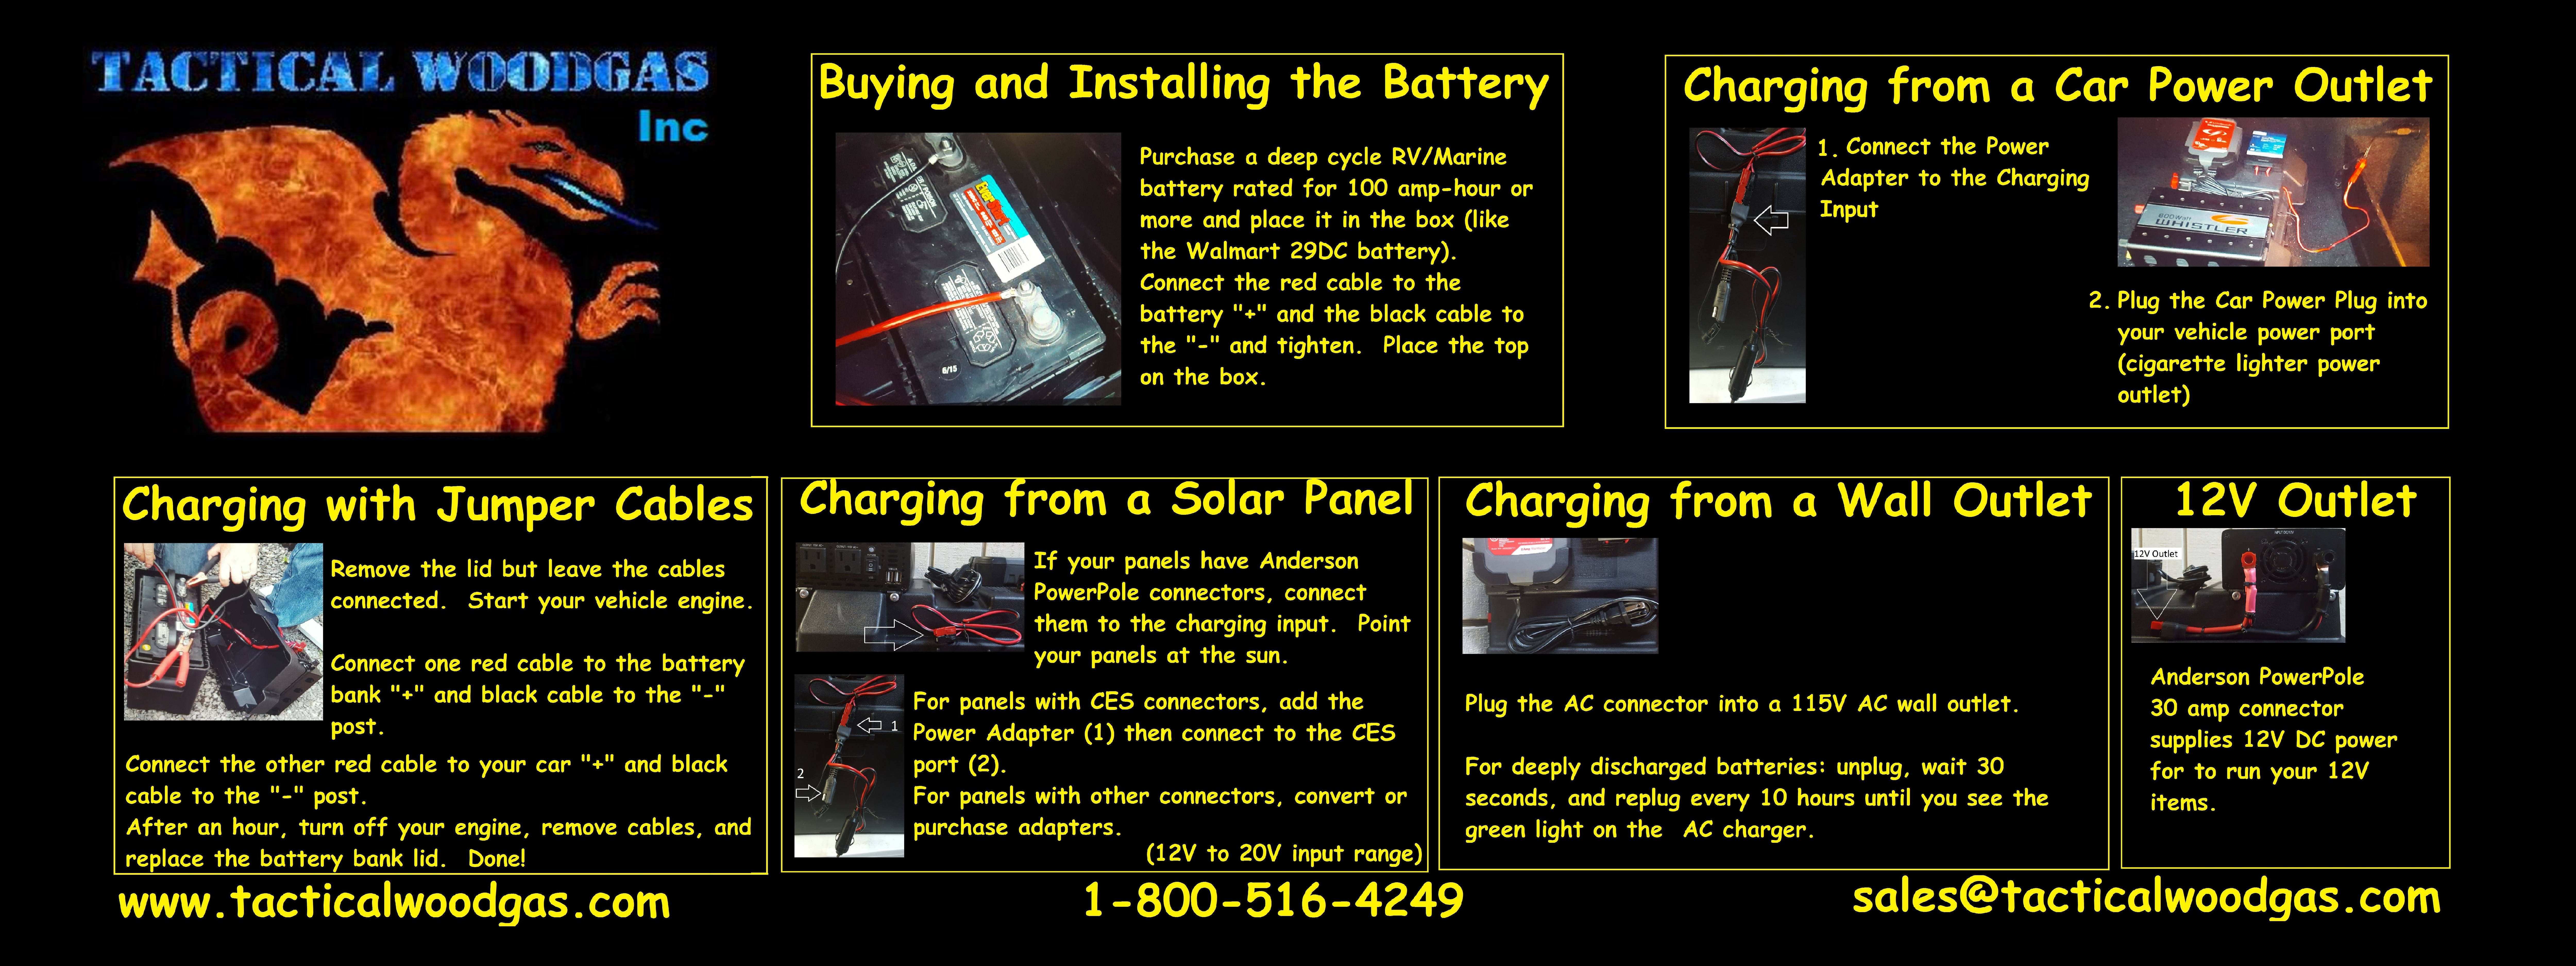 1200w Battery Bank Plus 100w Solar Panel Connecting Cable Wiring Panels To Not Included But Is Simple Add And Comes With Follow Instructions Here Are The Features Of Options See These Videos